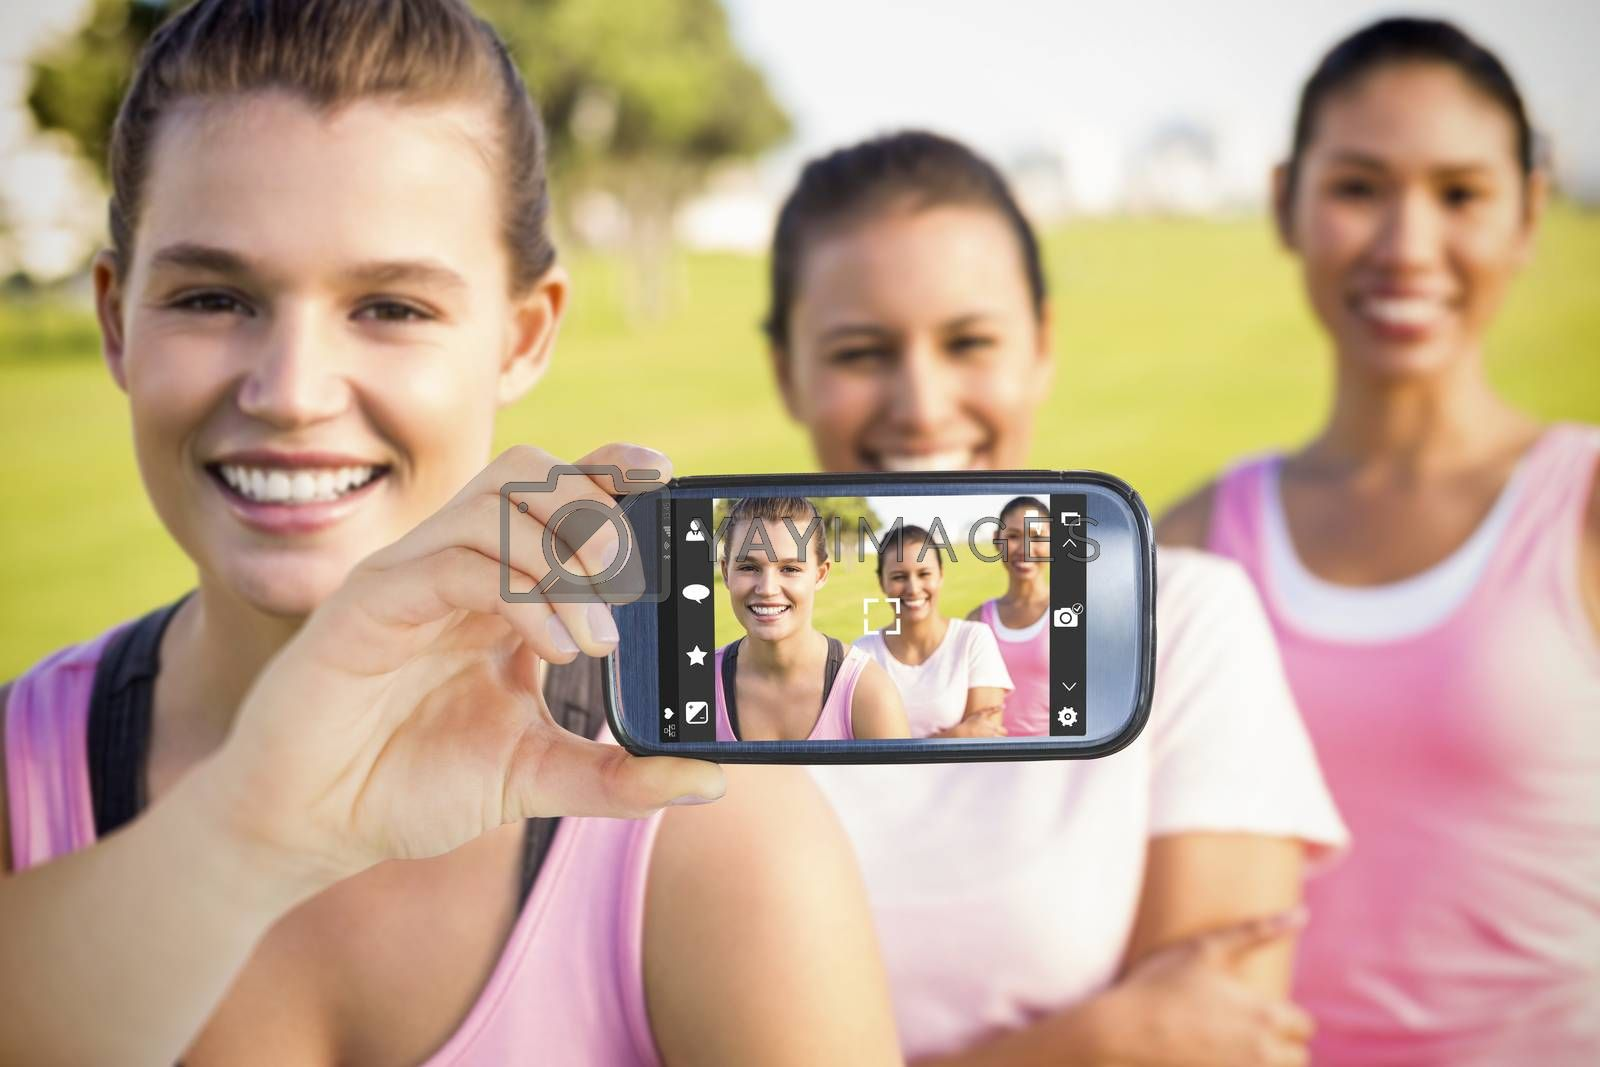 Hand holding smartphone showing against three smiling women wearing pink for breast cancer